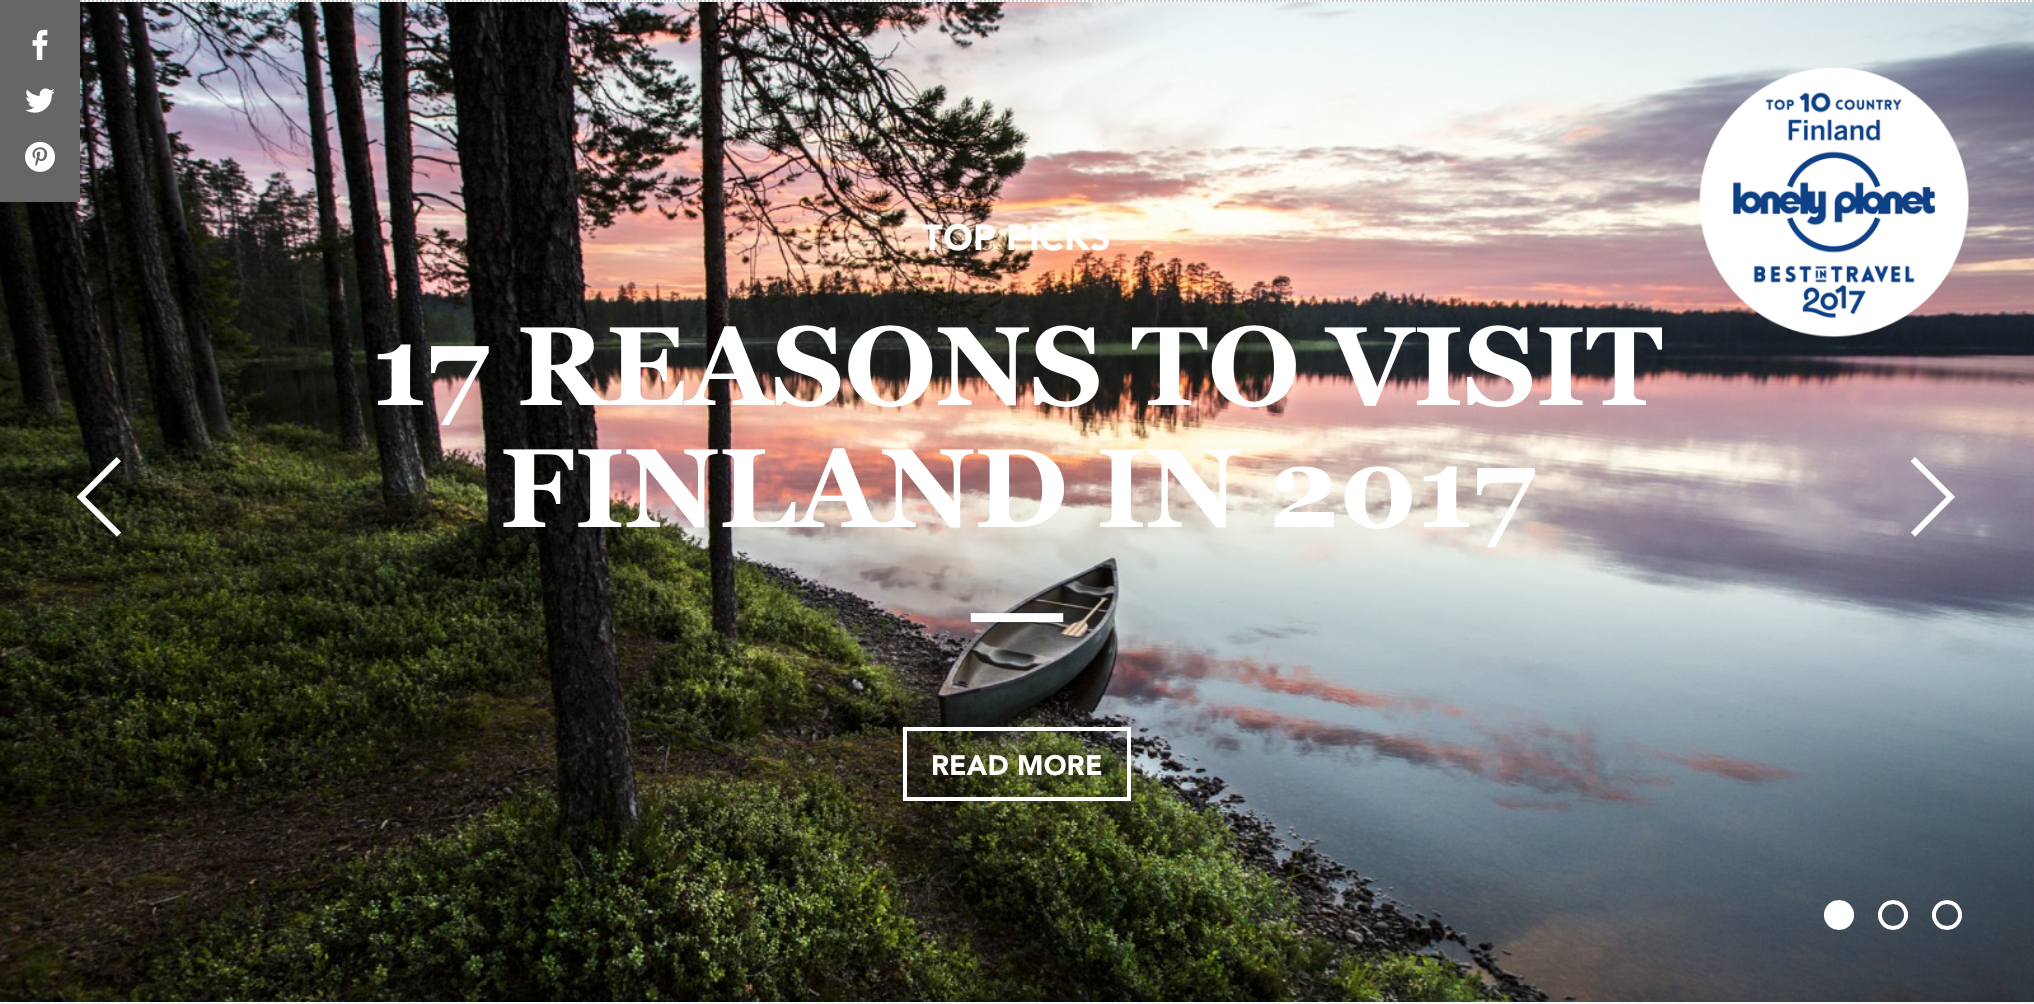 The Official Travel Guide of Finland